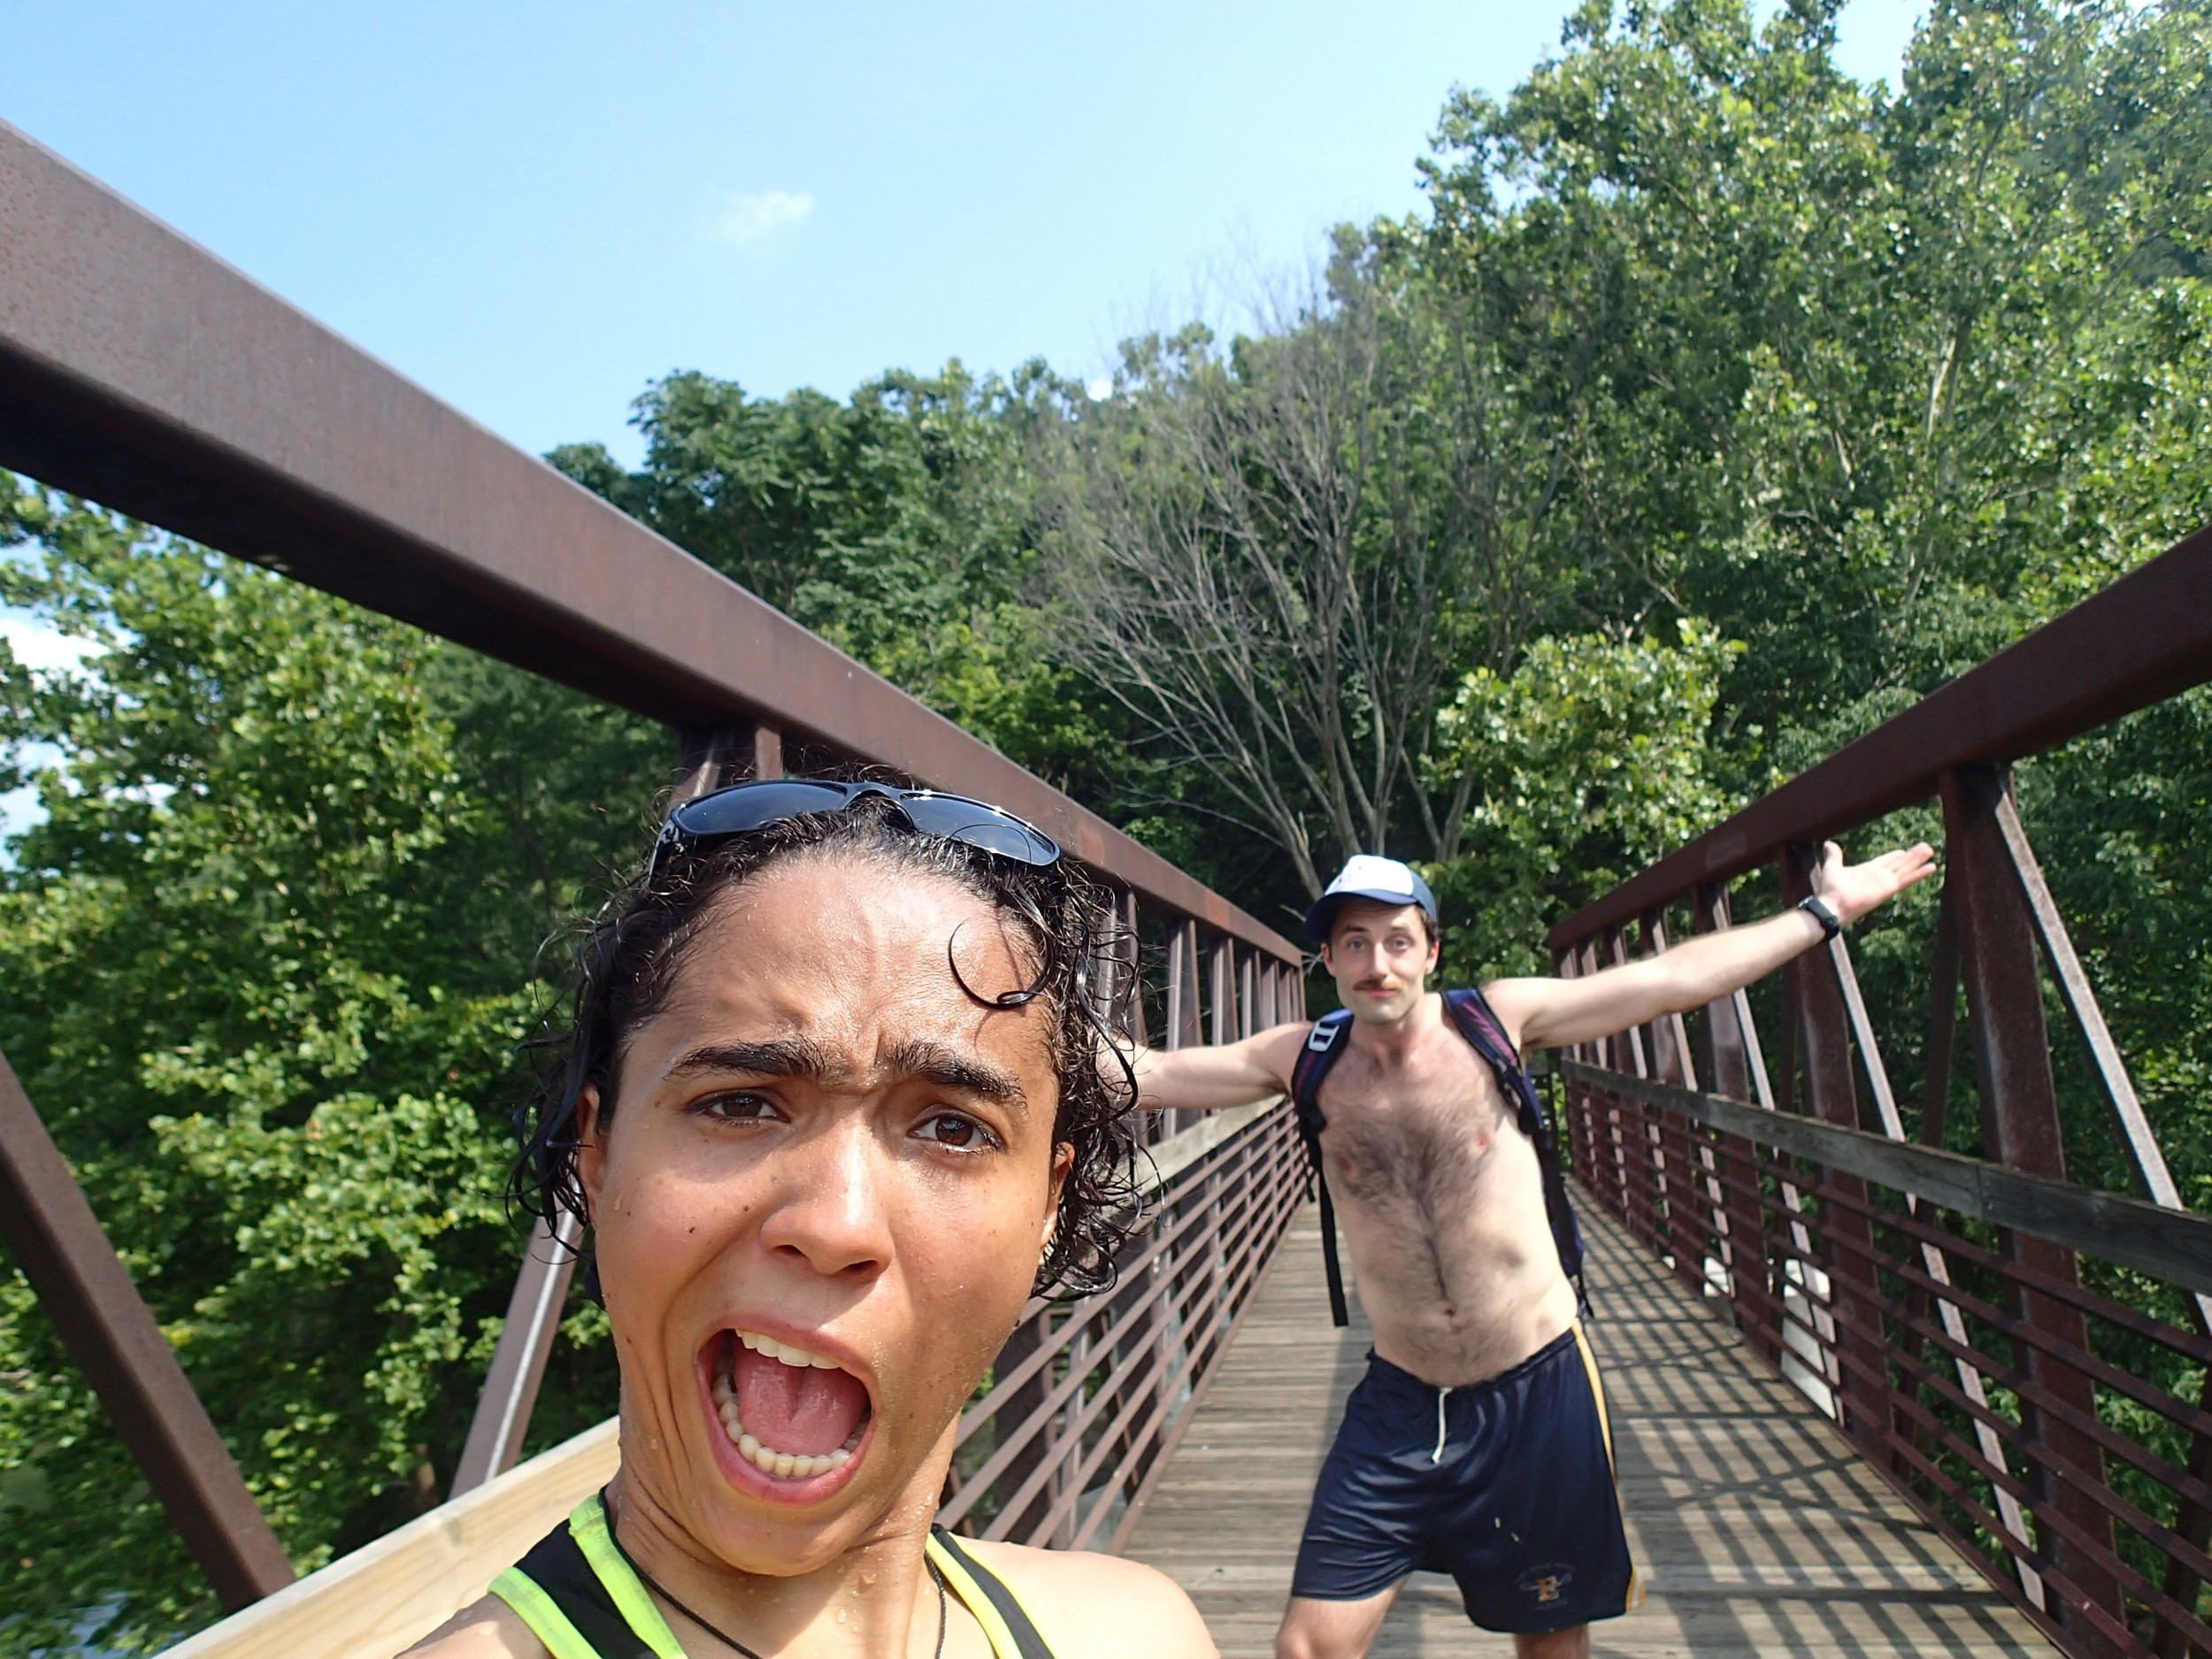 My friend Steph and I just jumped off of a bridge! (Into deep water, of course.)